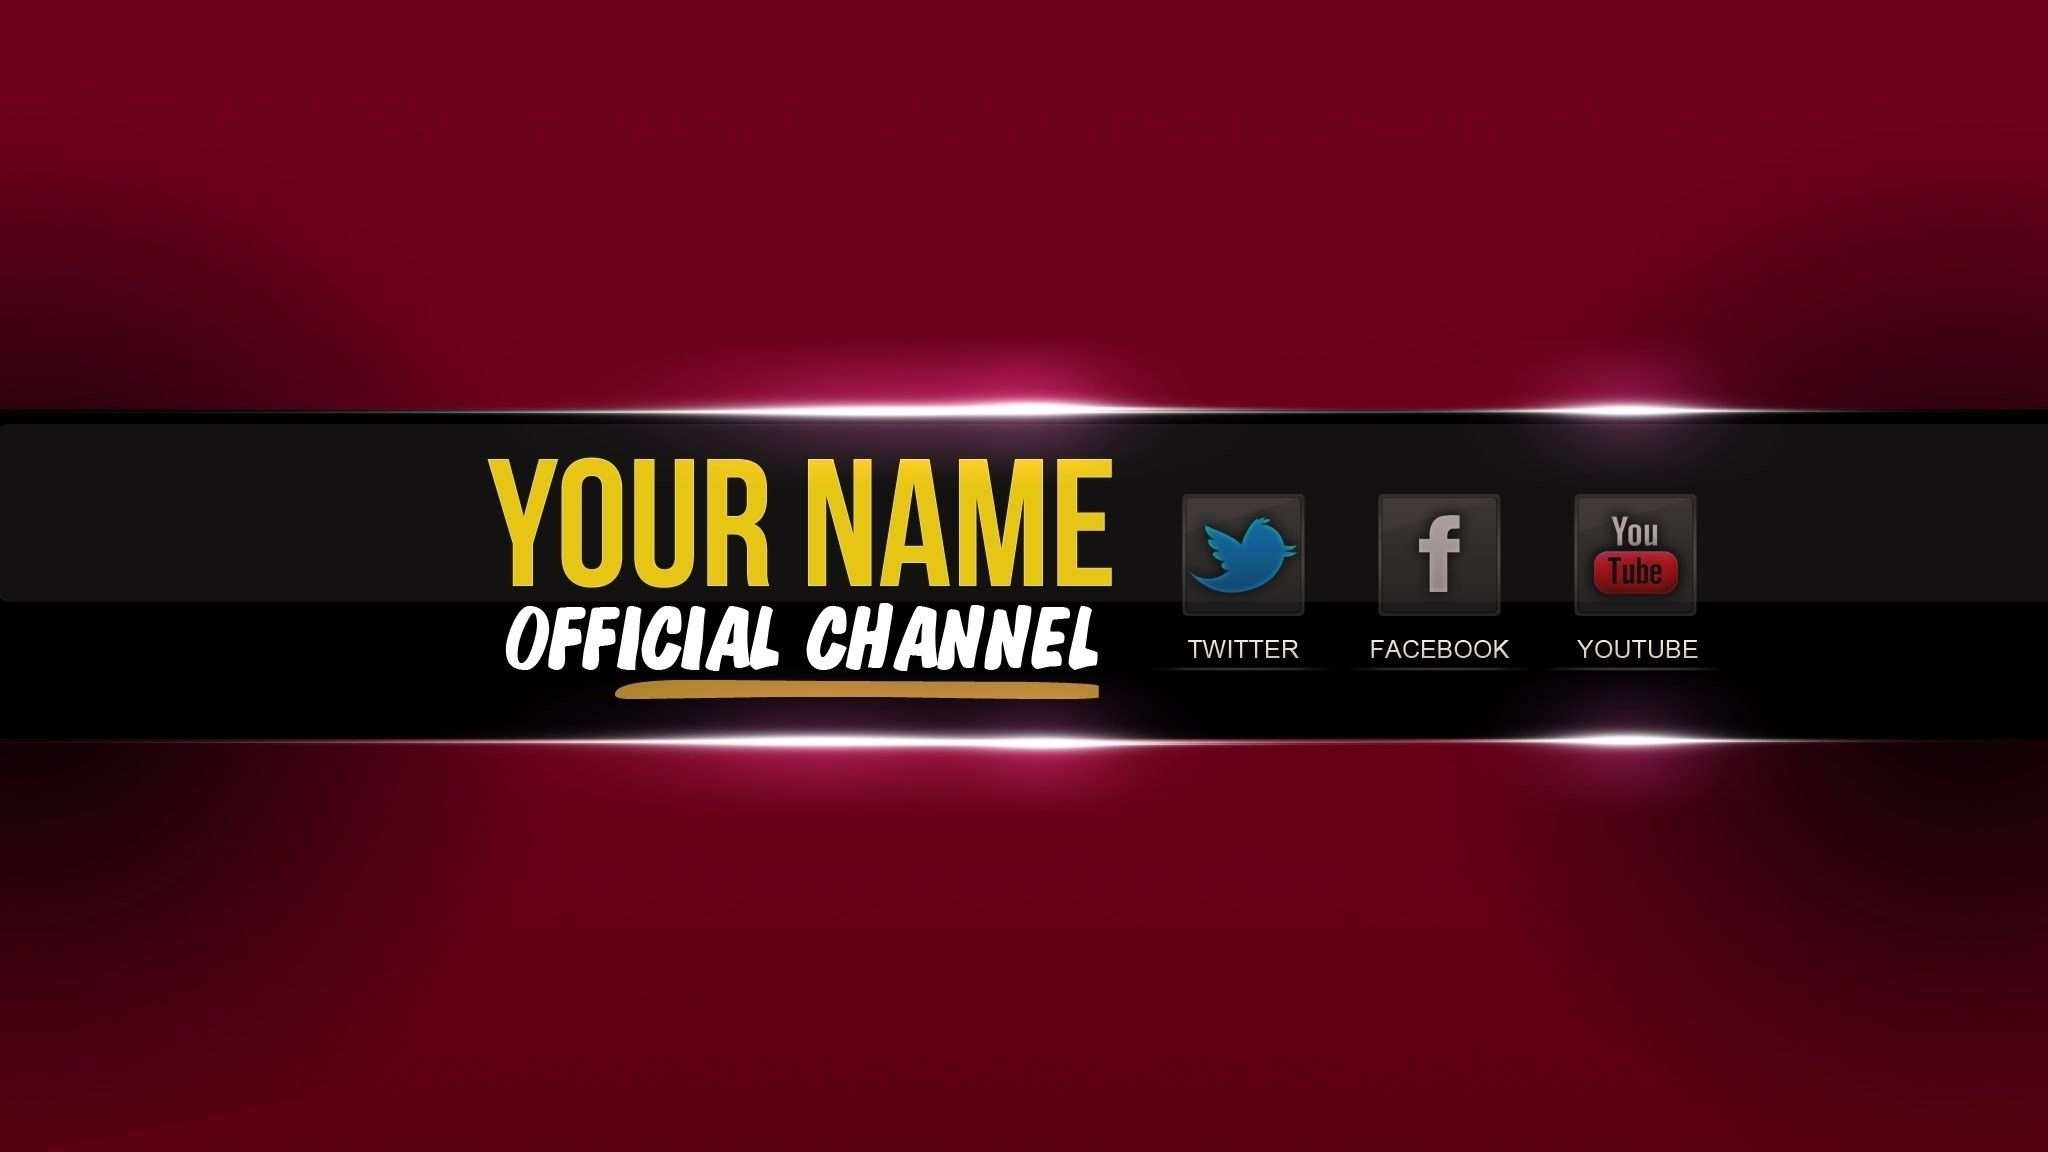 2048x1152 Youtube Banner Template Psd Cyberuse For Banner For